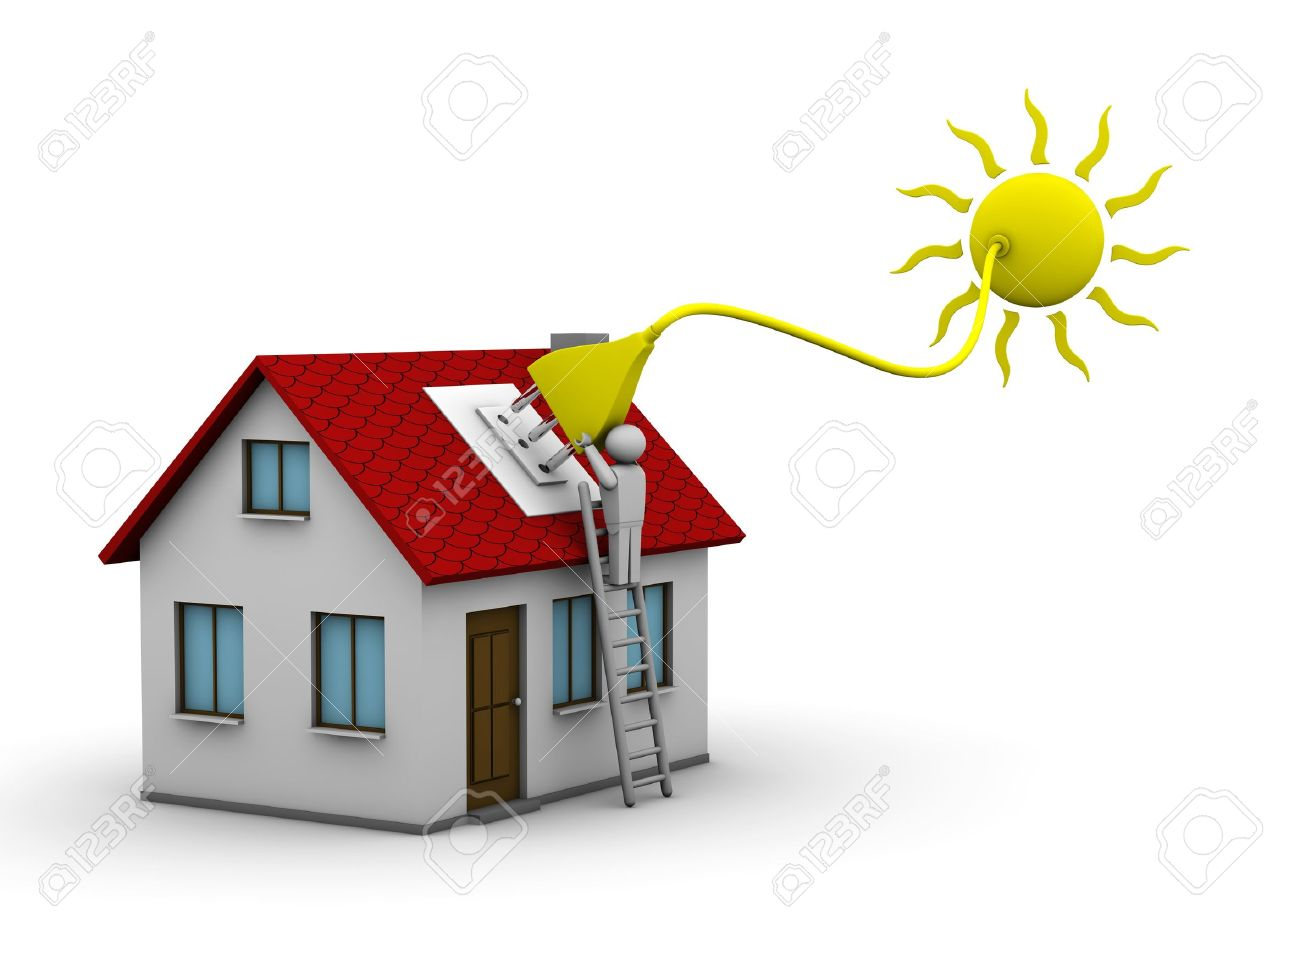 man who installs a solar energy system on a house Stock Photo - 7420678